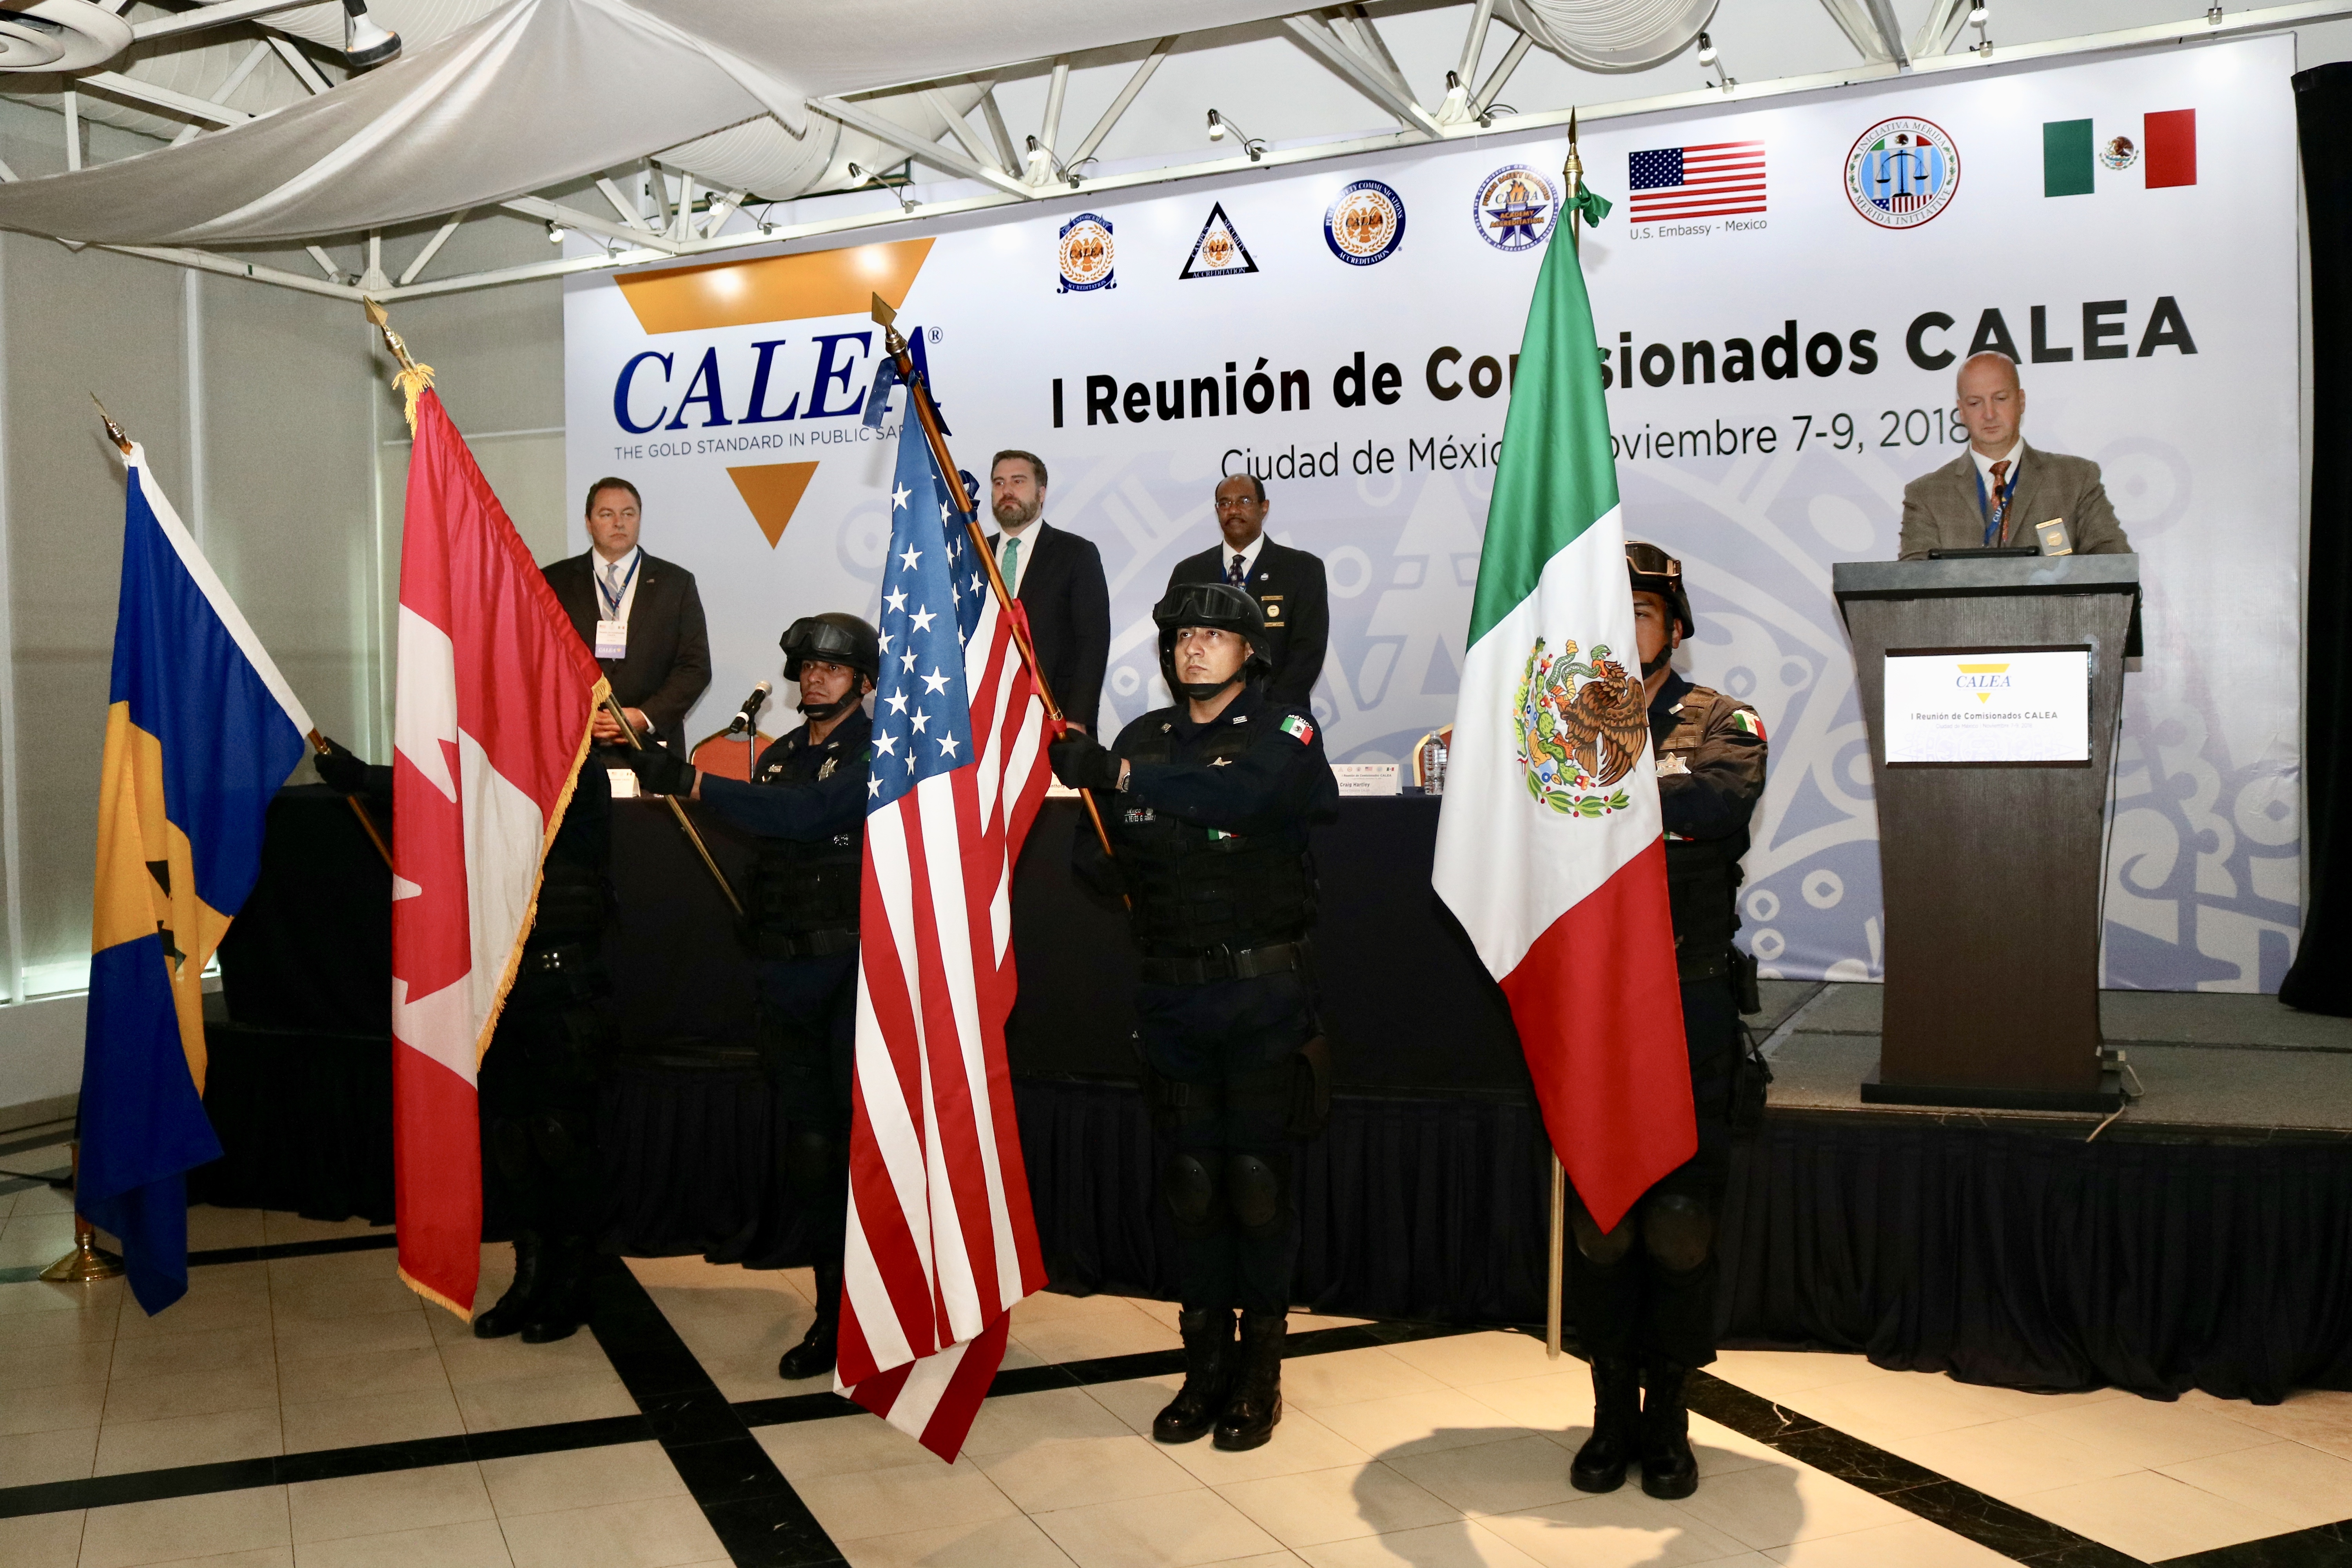 Police Foundation Partners with CALEA to Hold First Law Enforcement